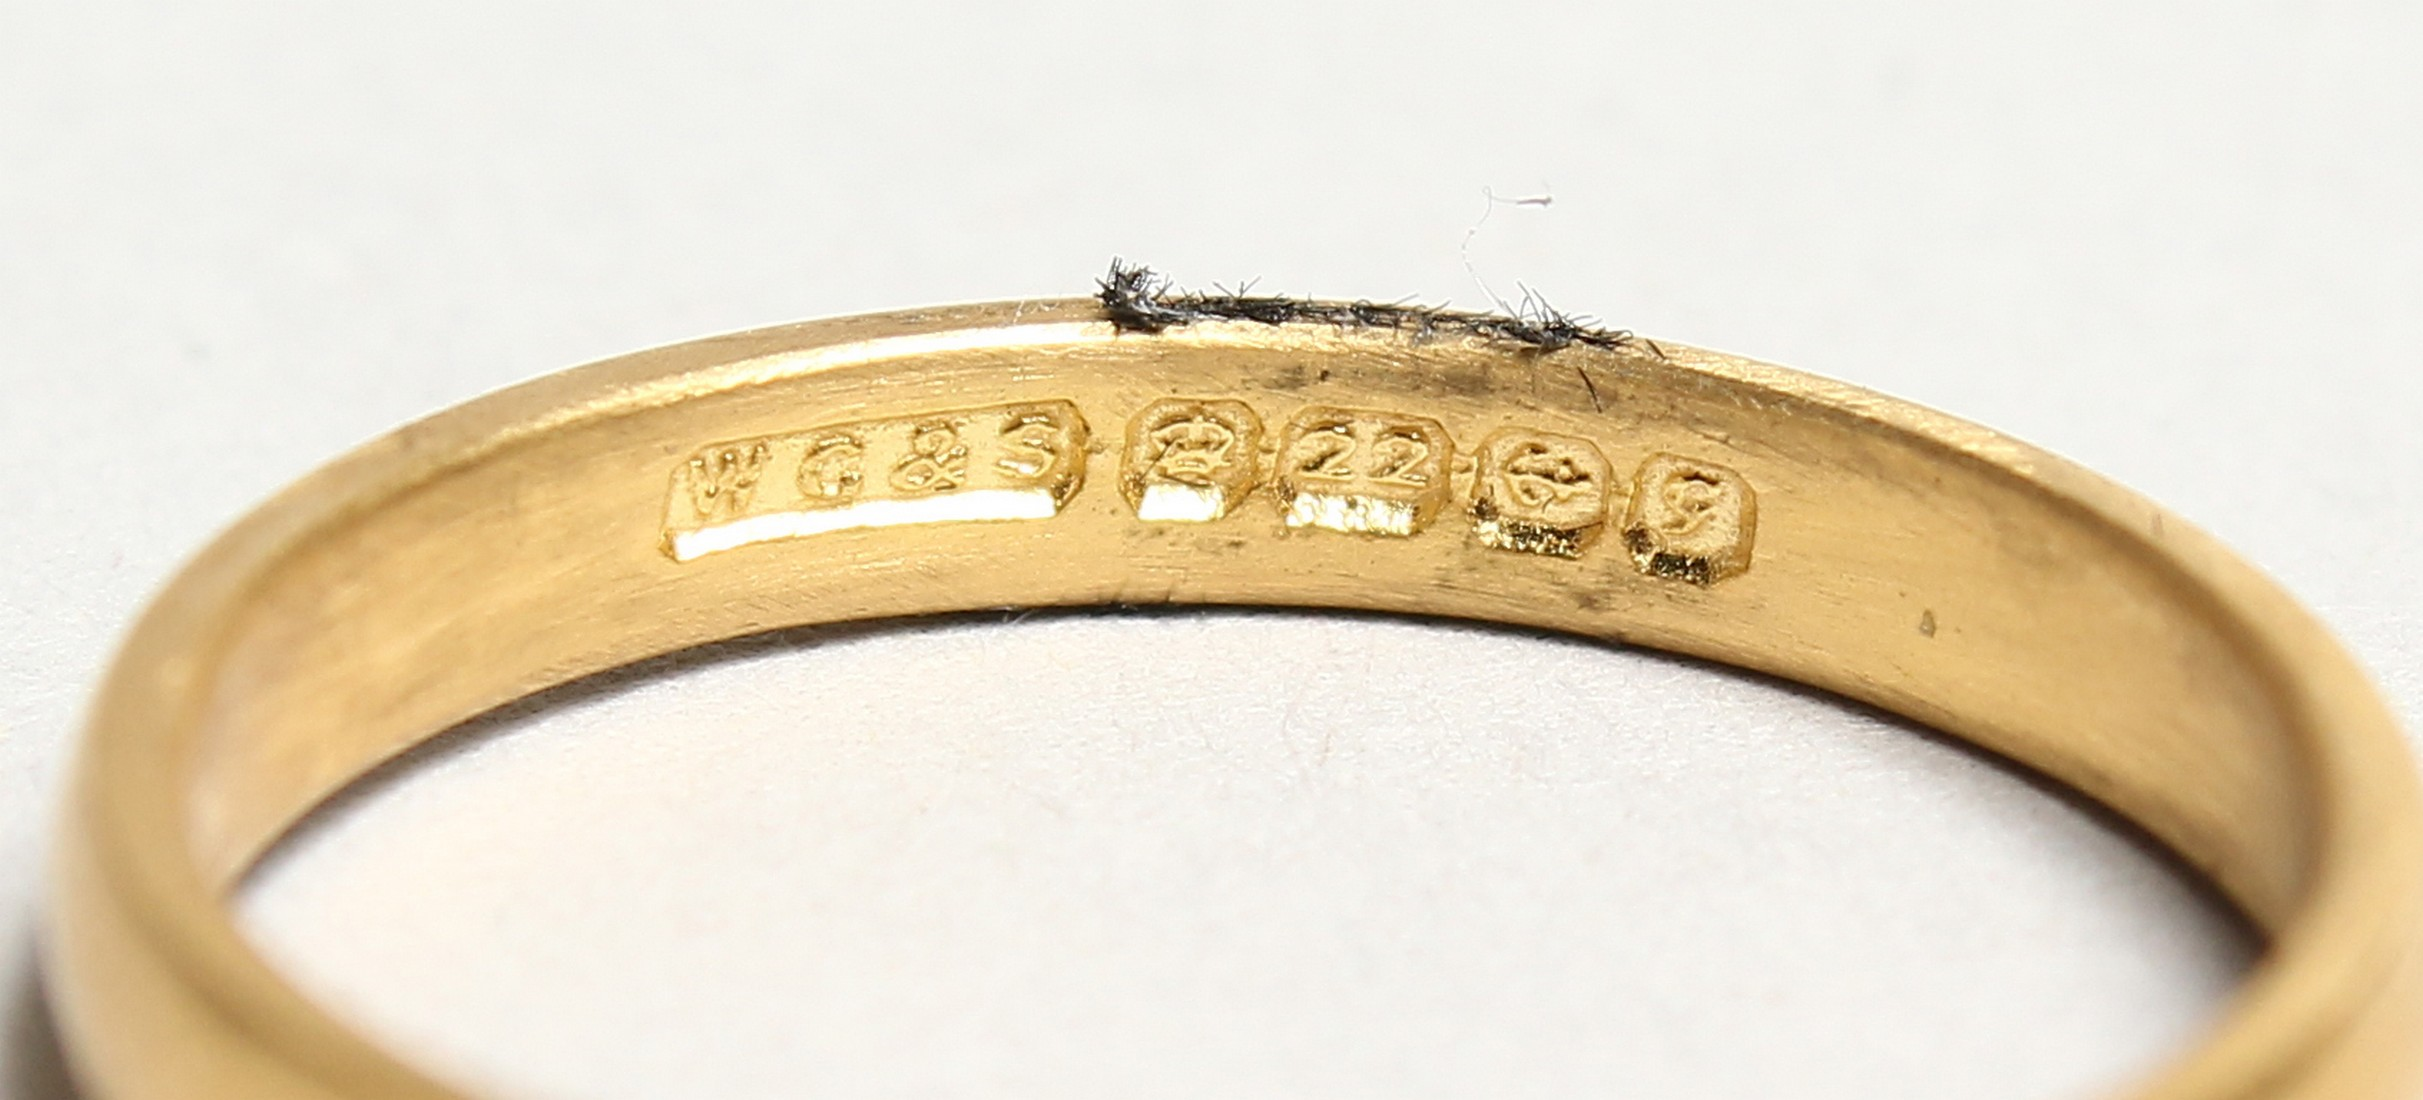 AN 18CT GOLD SOLITAIRE DIAMOND RING - Image 3 of 3